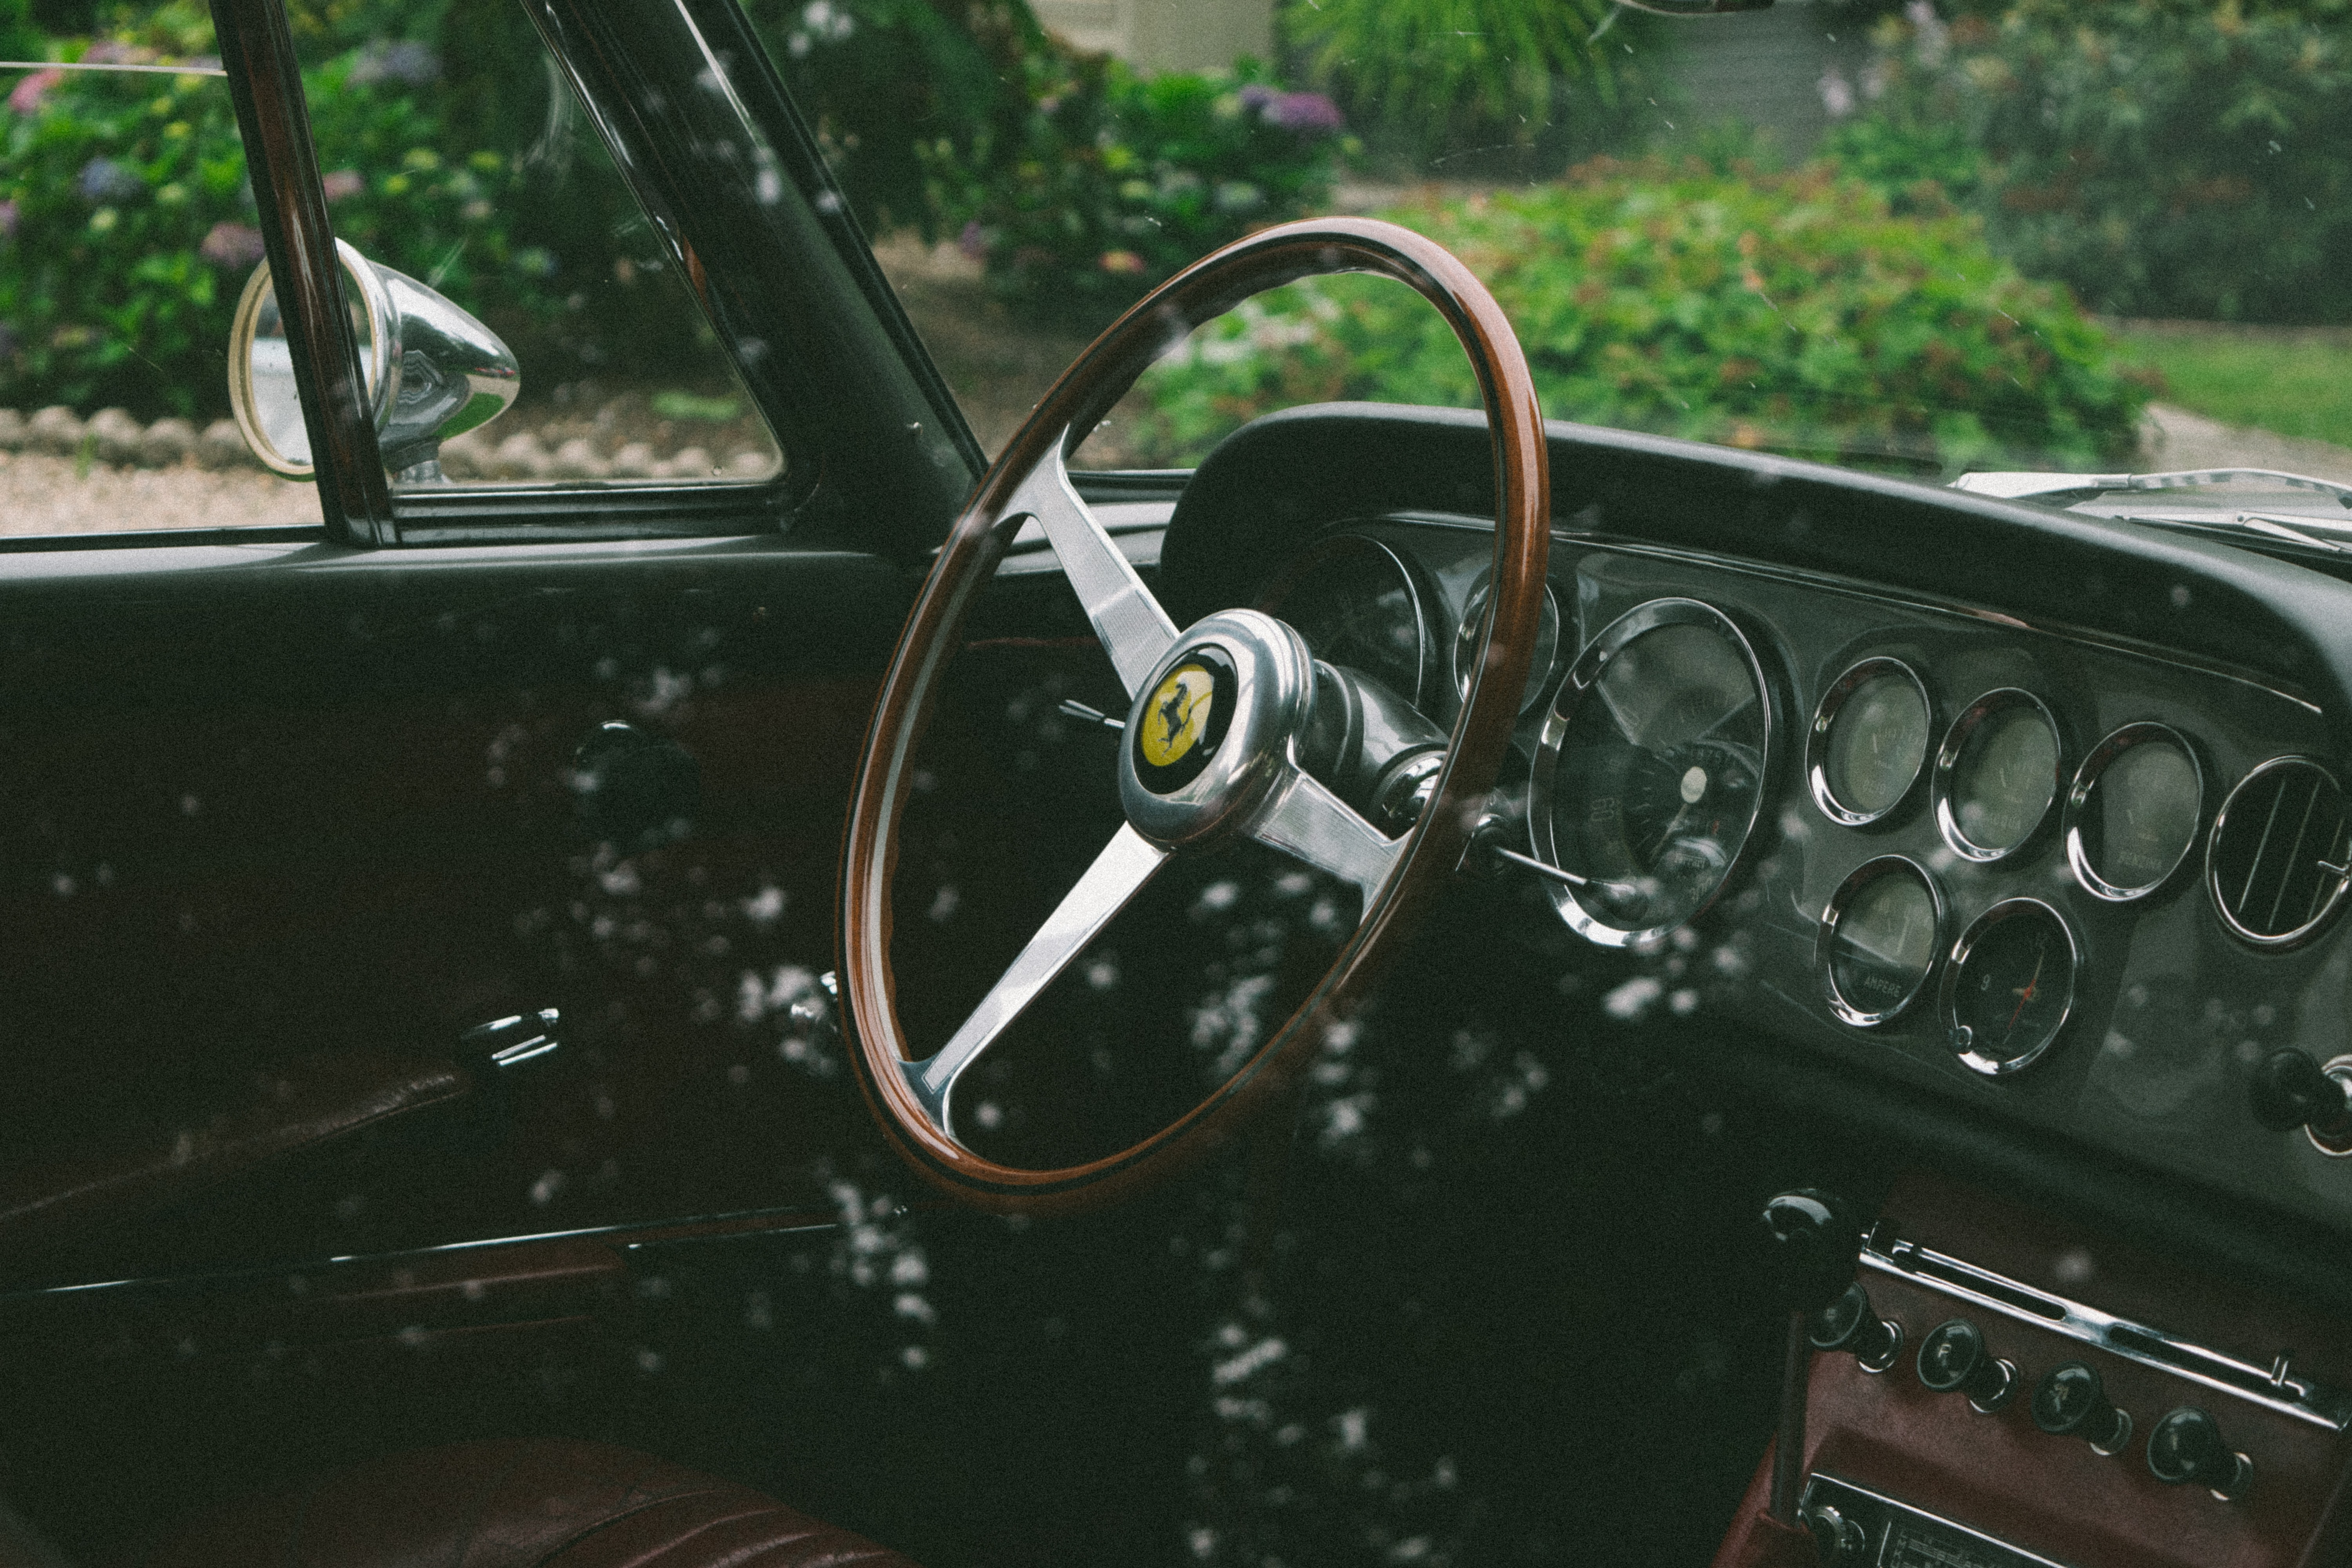 Vintage steering wheel and dashboard in classic car with bushes in the background